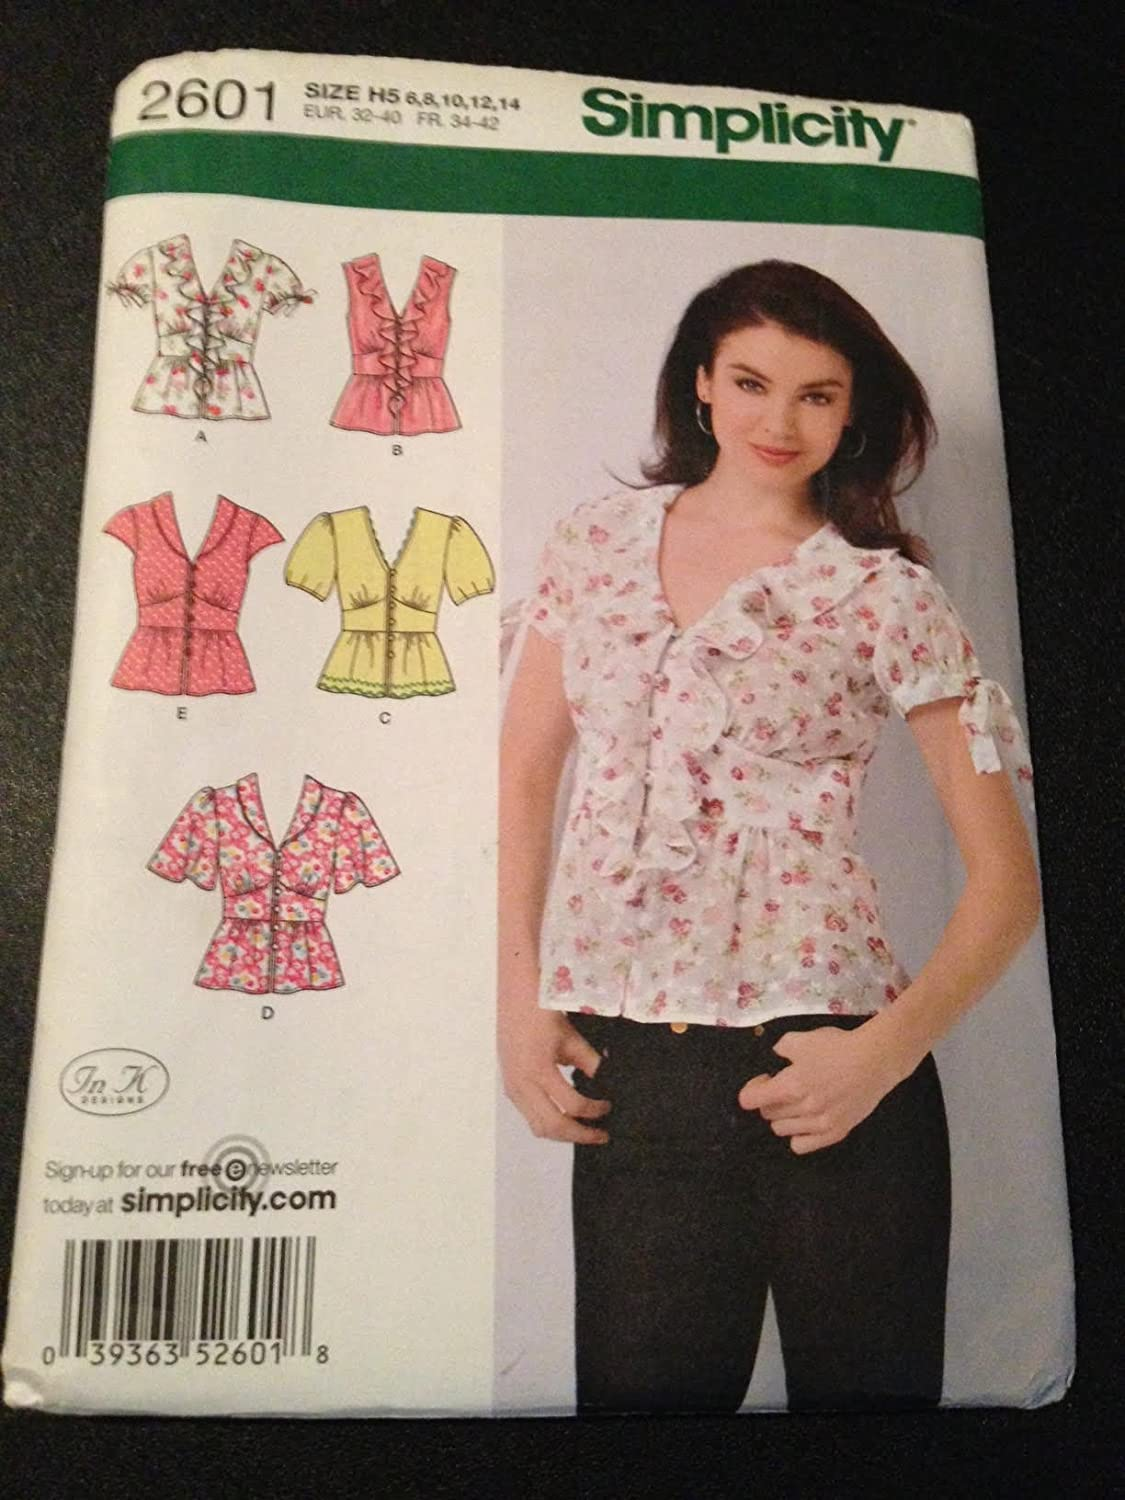 Simplicity 2601 Sewing Pattern, Misses' Blouse with Collar and Sleeve Variation, Size H5 (6,8,10,12,14)